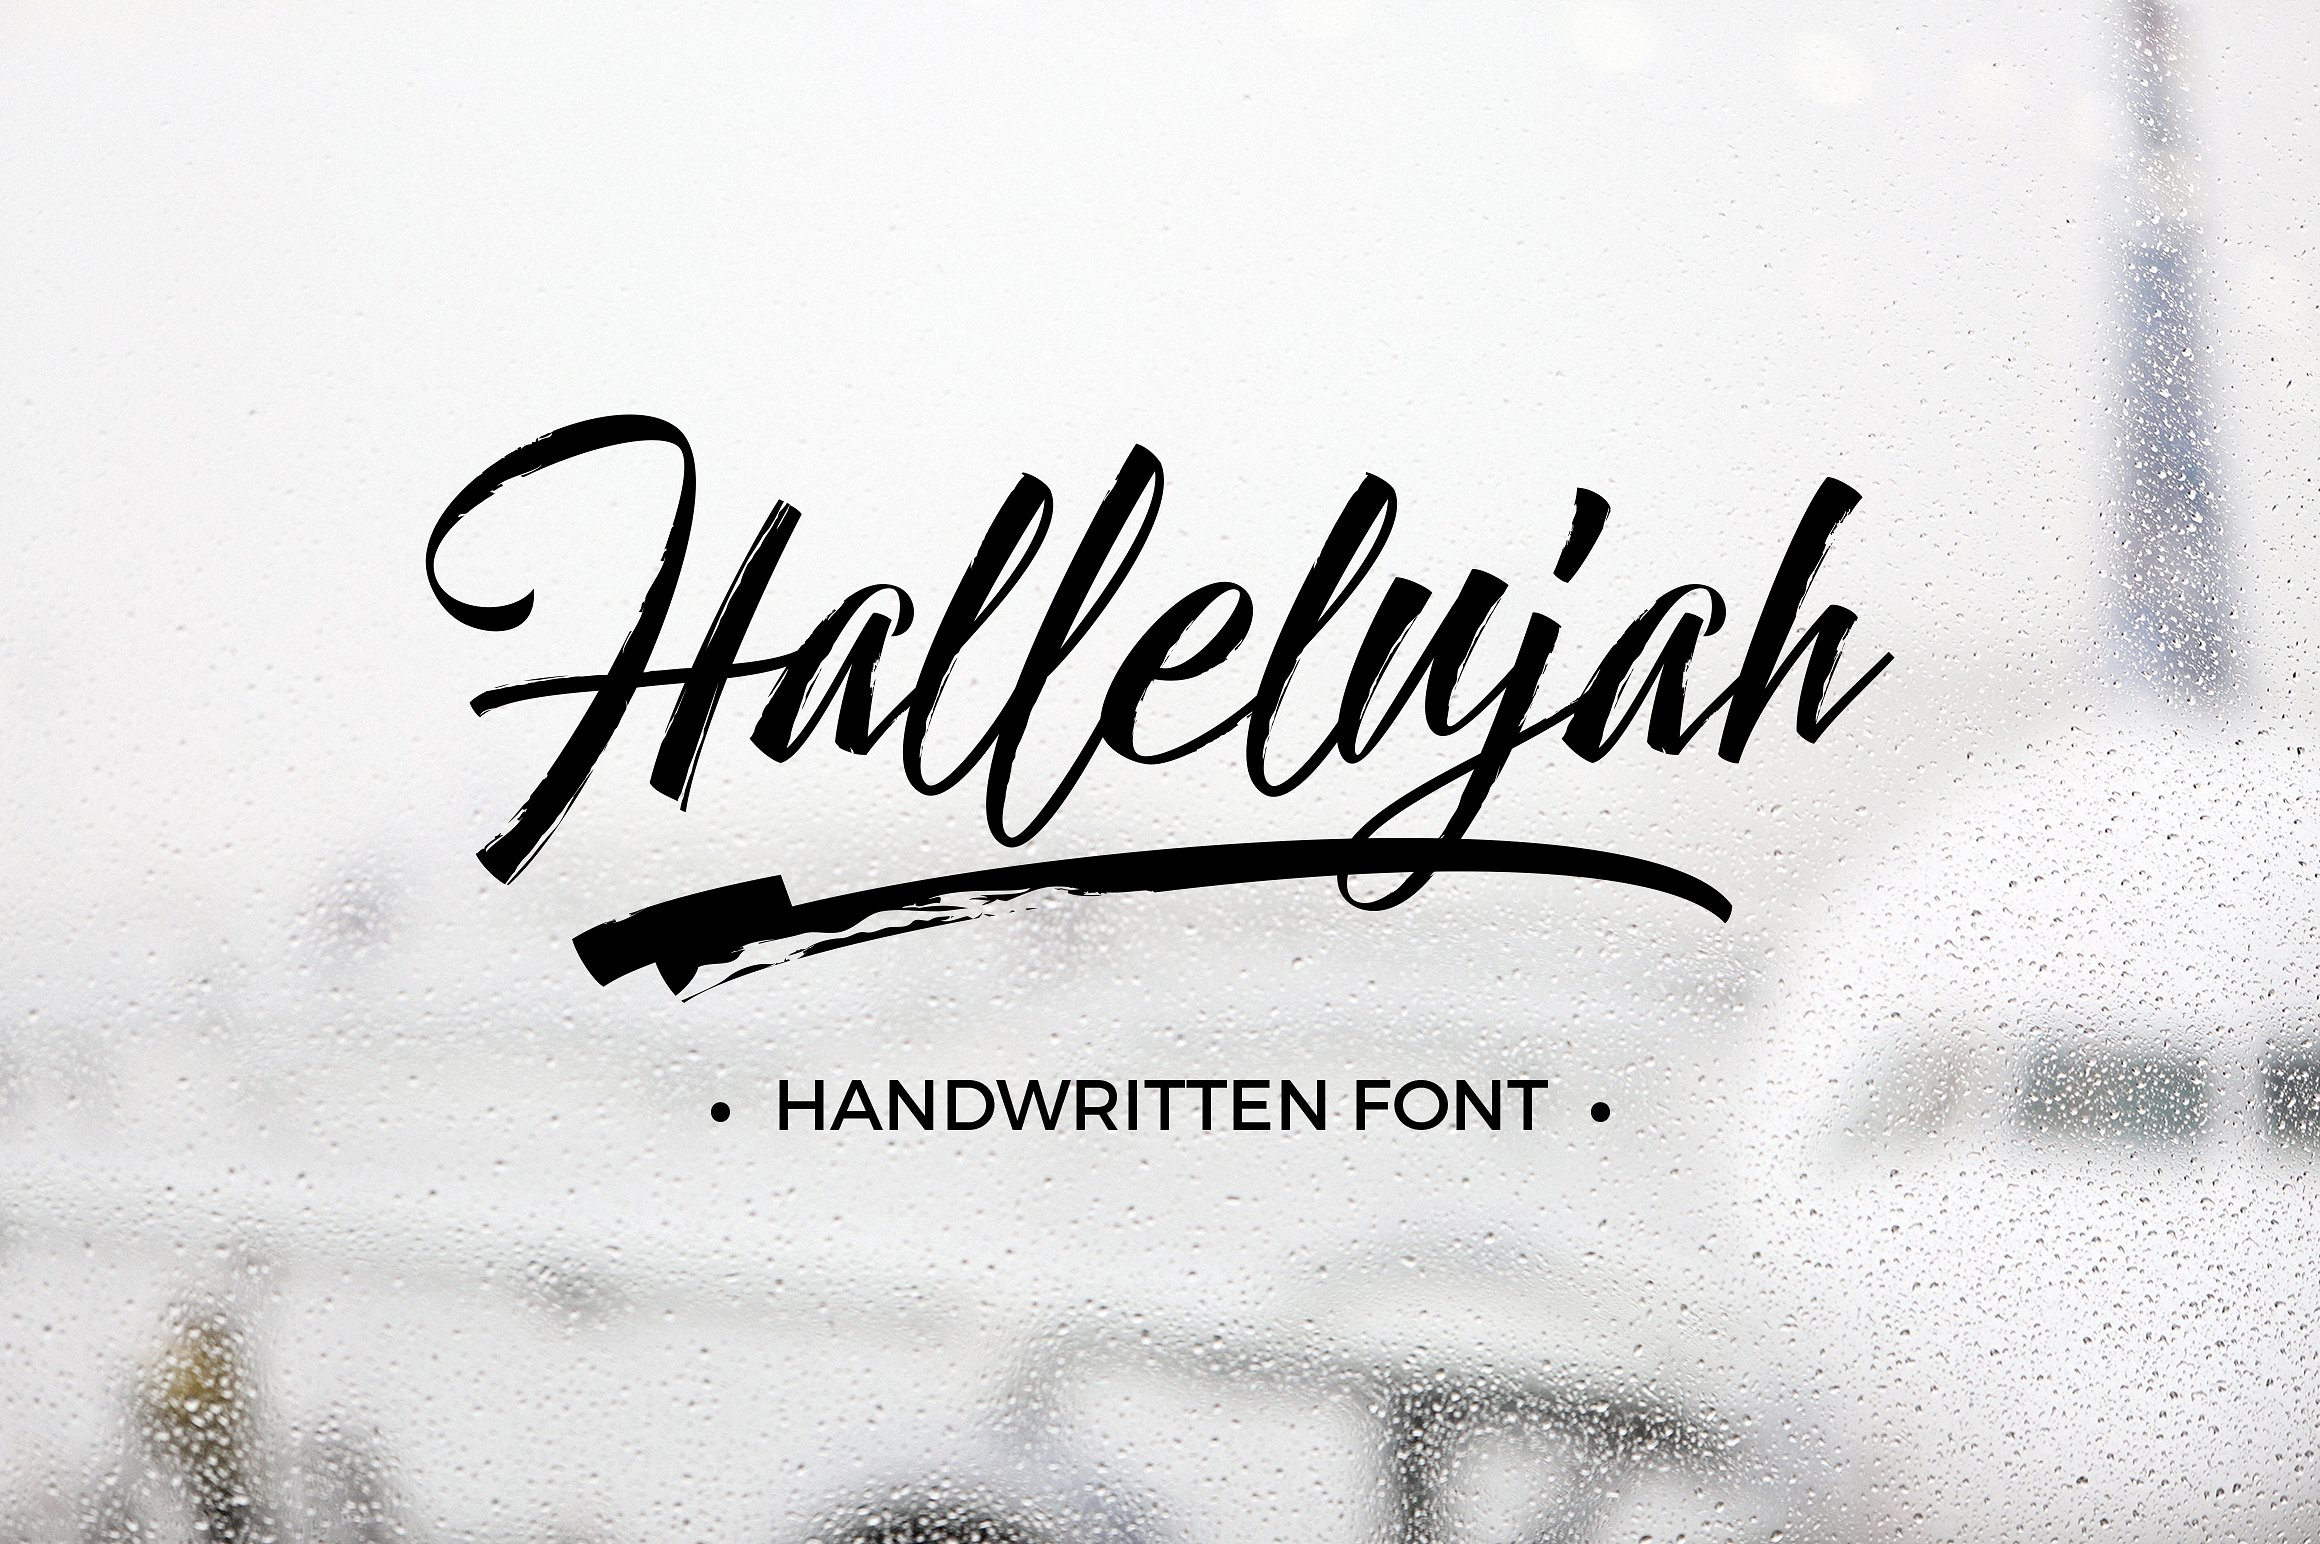 Lucida Calligraphy Regular Font Free Download Lucida Calligraphy Regular Font Free Download Modern Brush